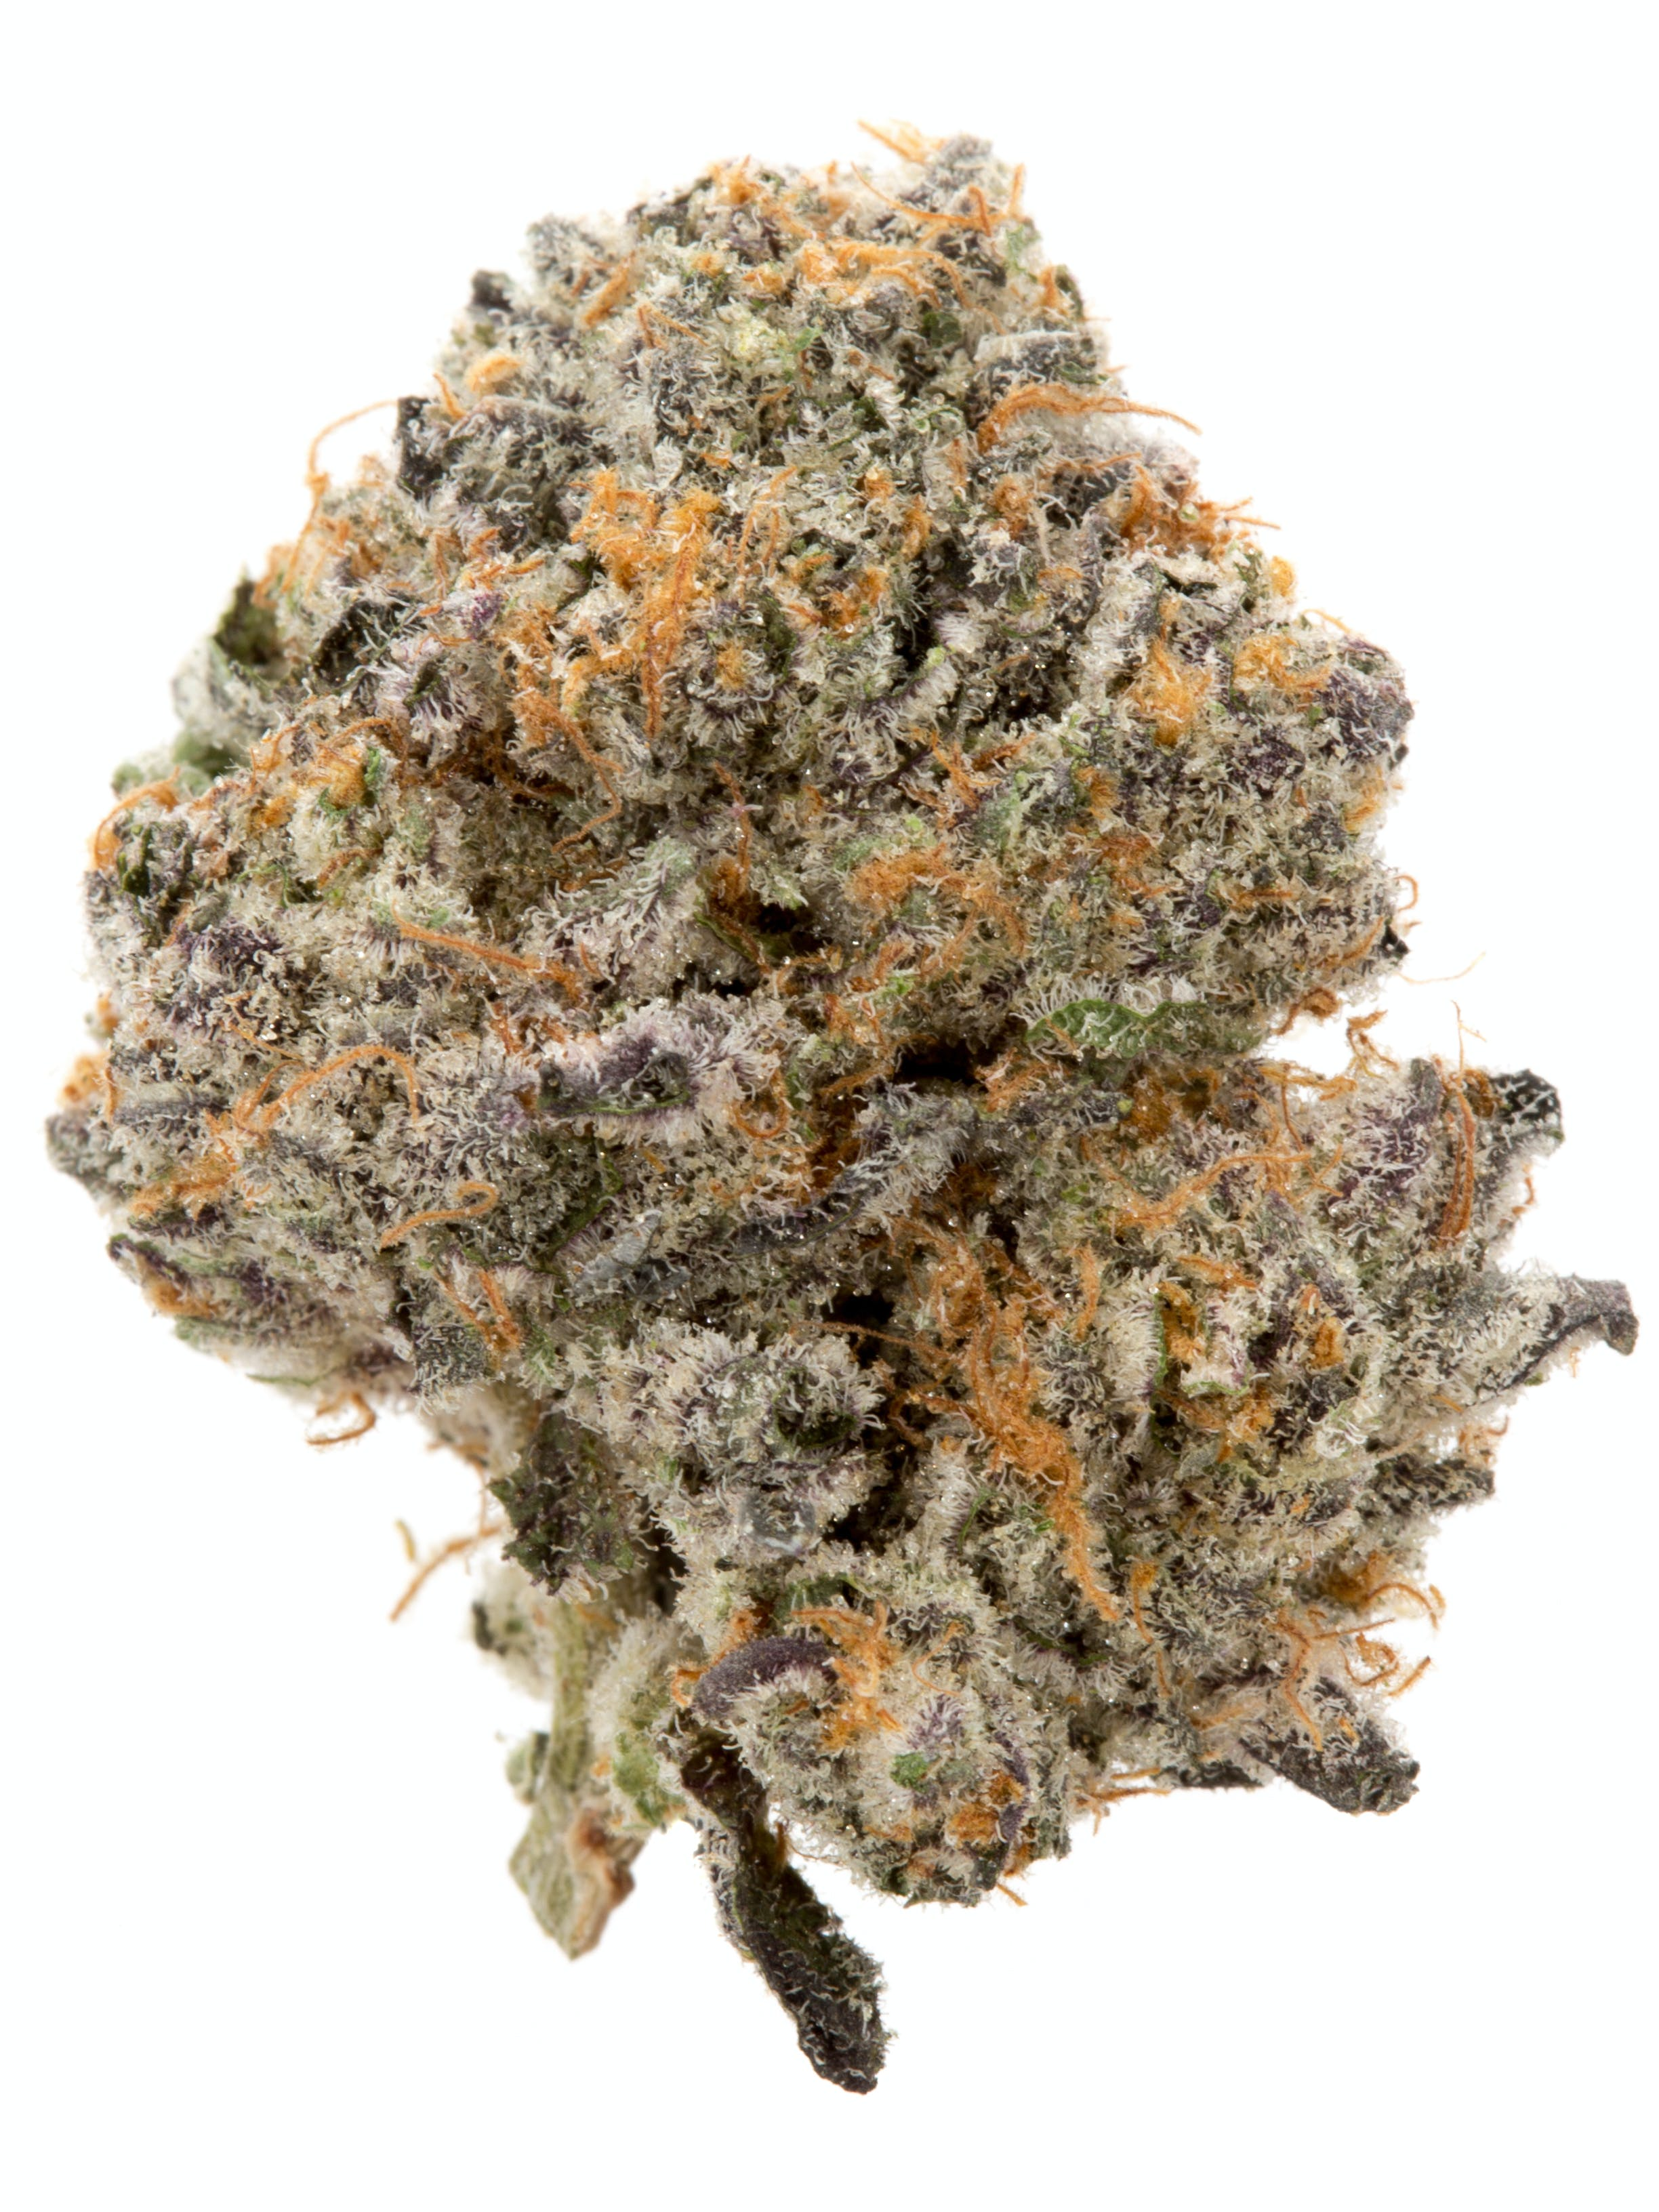 Crunch Berry Aka Crunch Berry Kush Marijuana Strain Information Weedmaps Most often, this applies when an individual has missed some cue to stop, thus creating a useless or bothersome excess. crunch berry kush marijuana strain